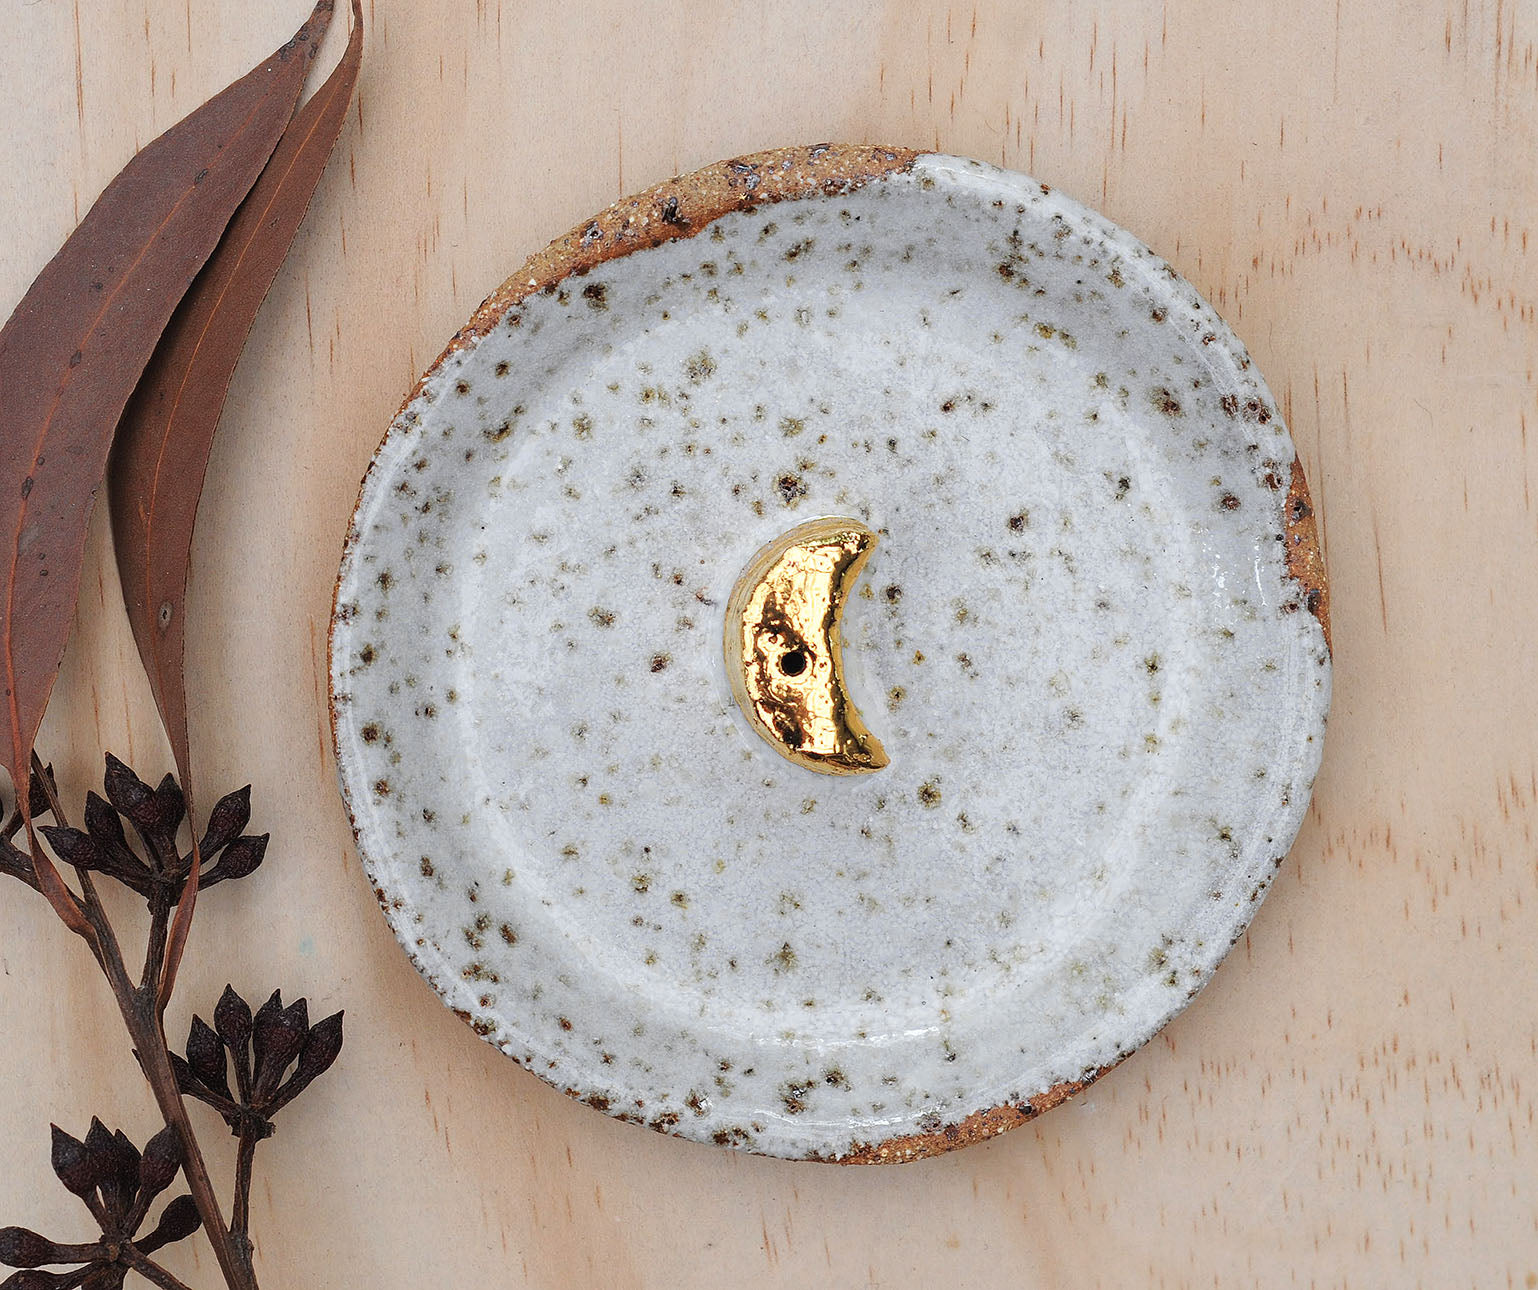 GOLD MOON INCENSE HOLDER - WHITE DRIBBLE GLAZE - SPECKLED CLAY